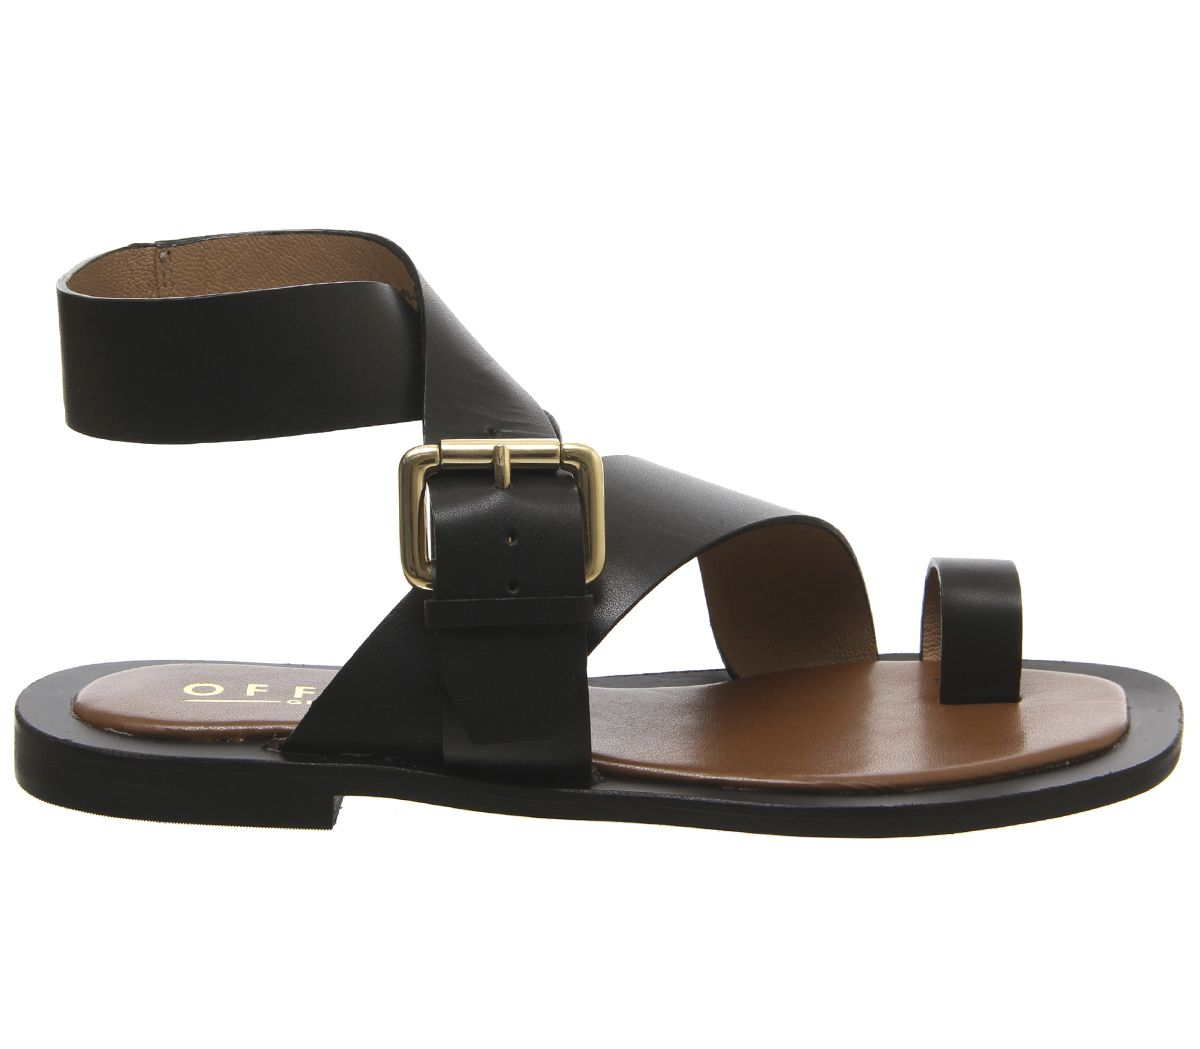 Womens Office Serenity Sandals Black Leather Sandals